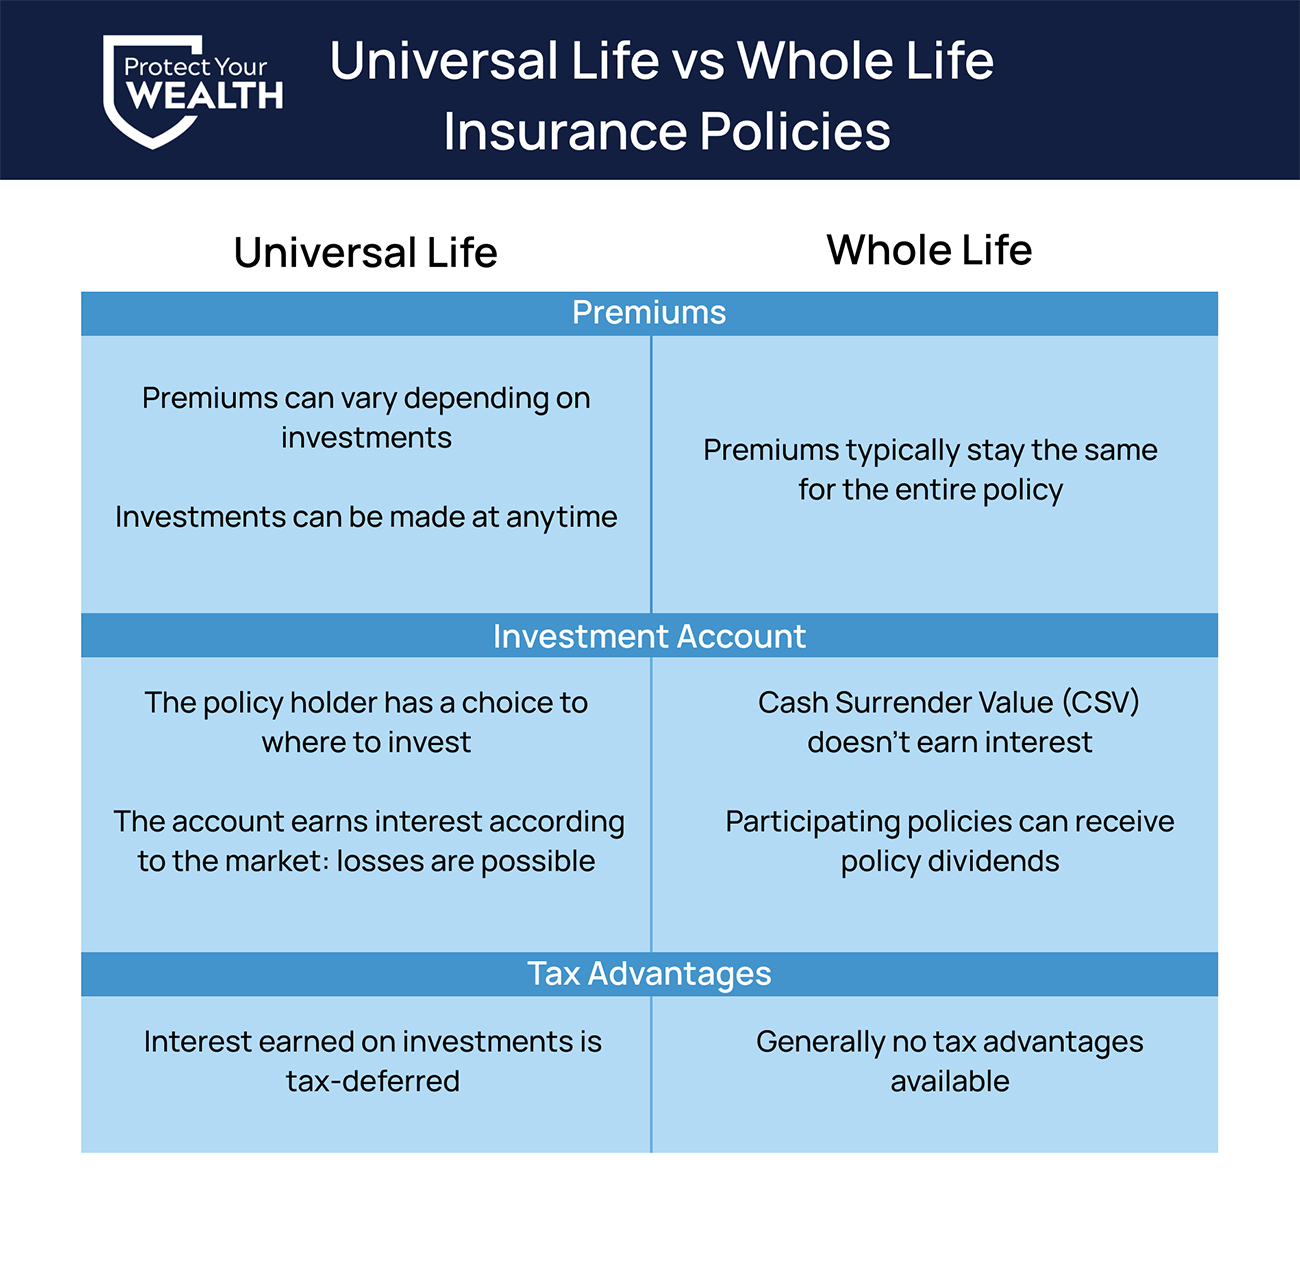 Main differences between Universal life vs Whole life insurance policies